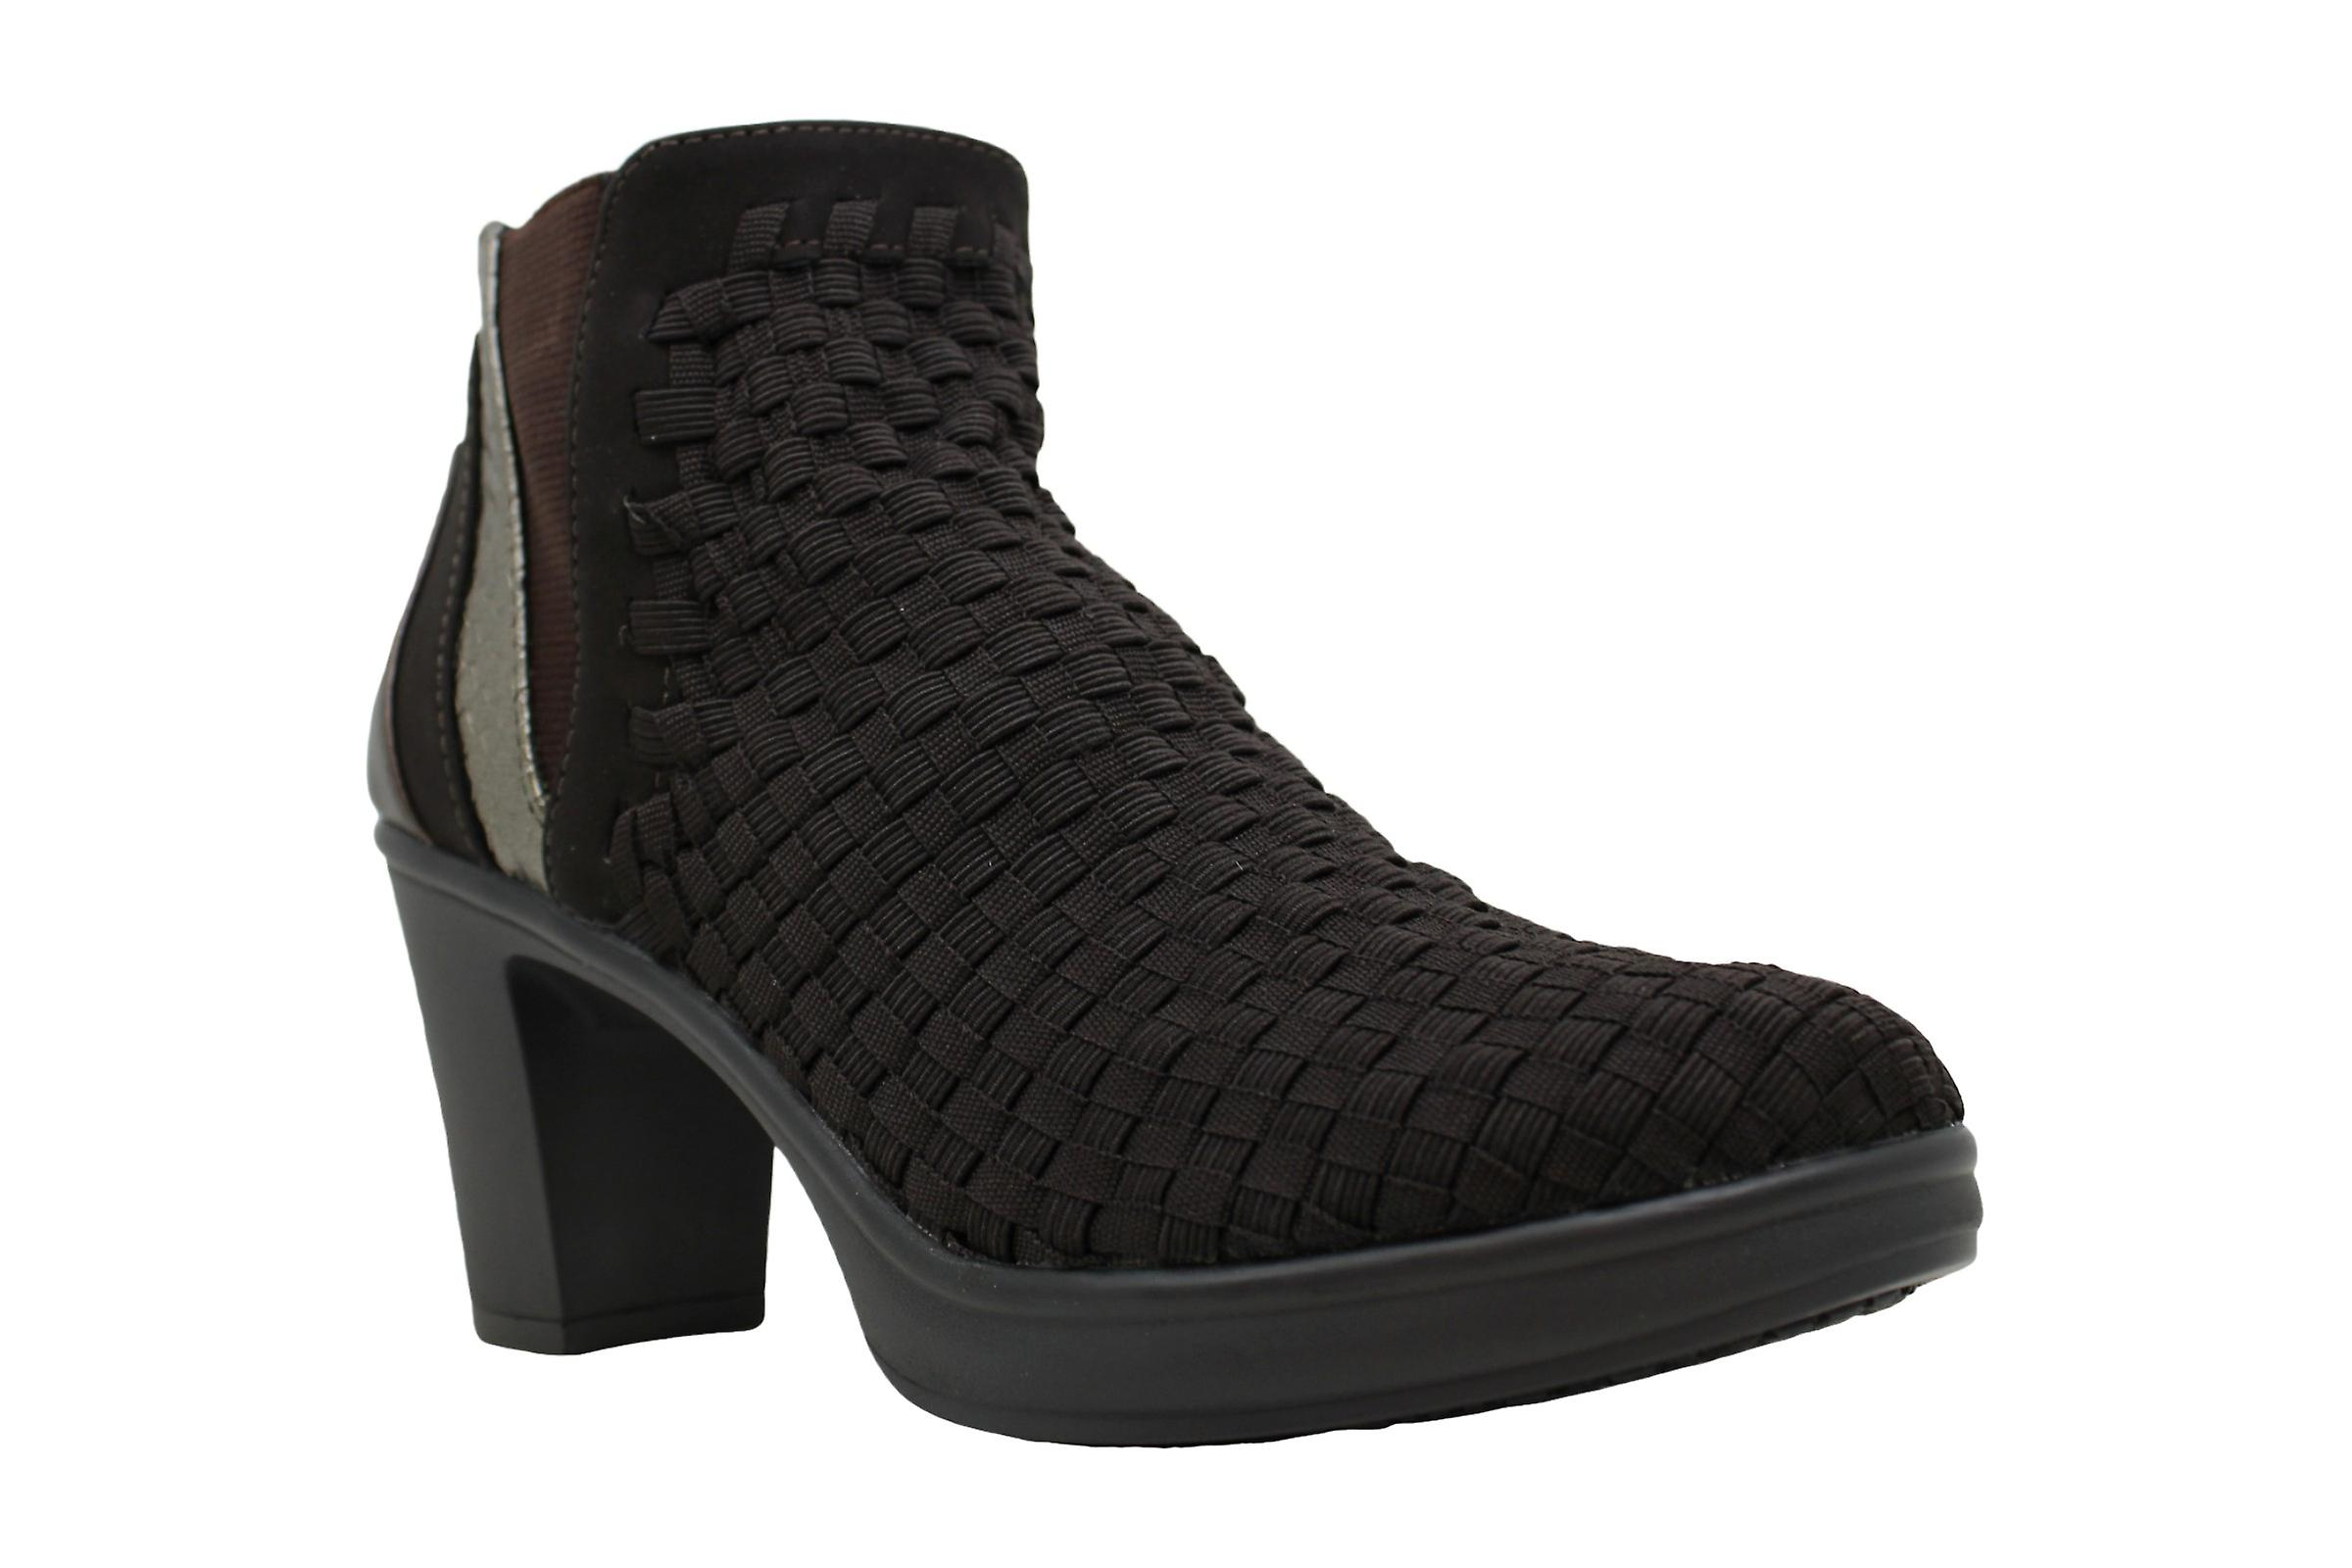 Steve Madden Womens NC-EXCIT Fabric Closed Toe Ankle Fashion Boots QkrqD